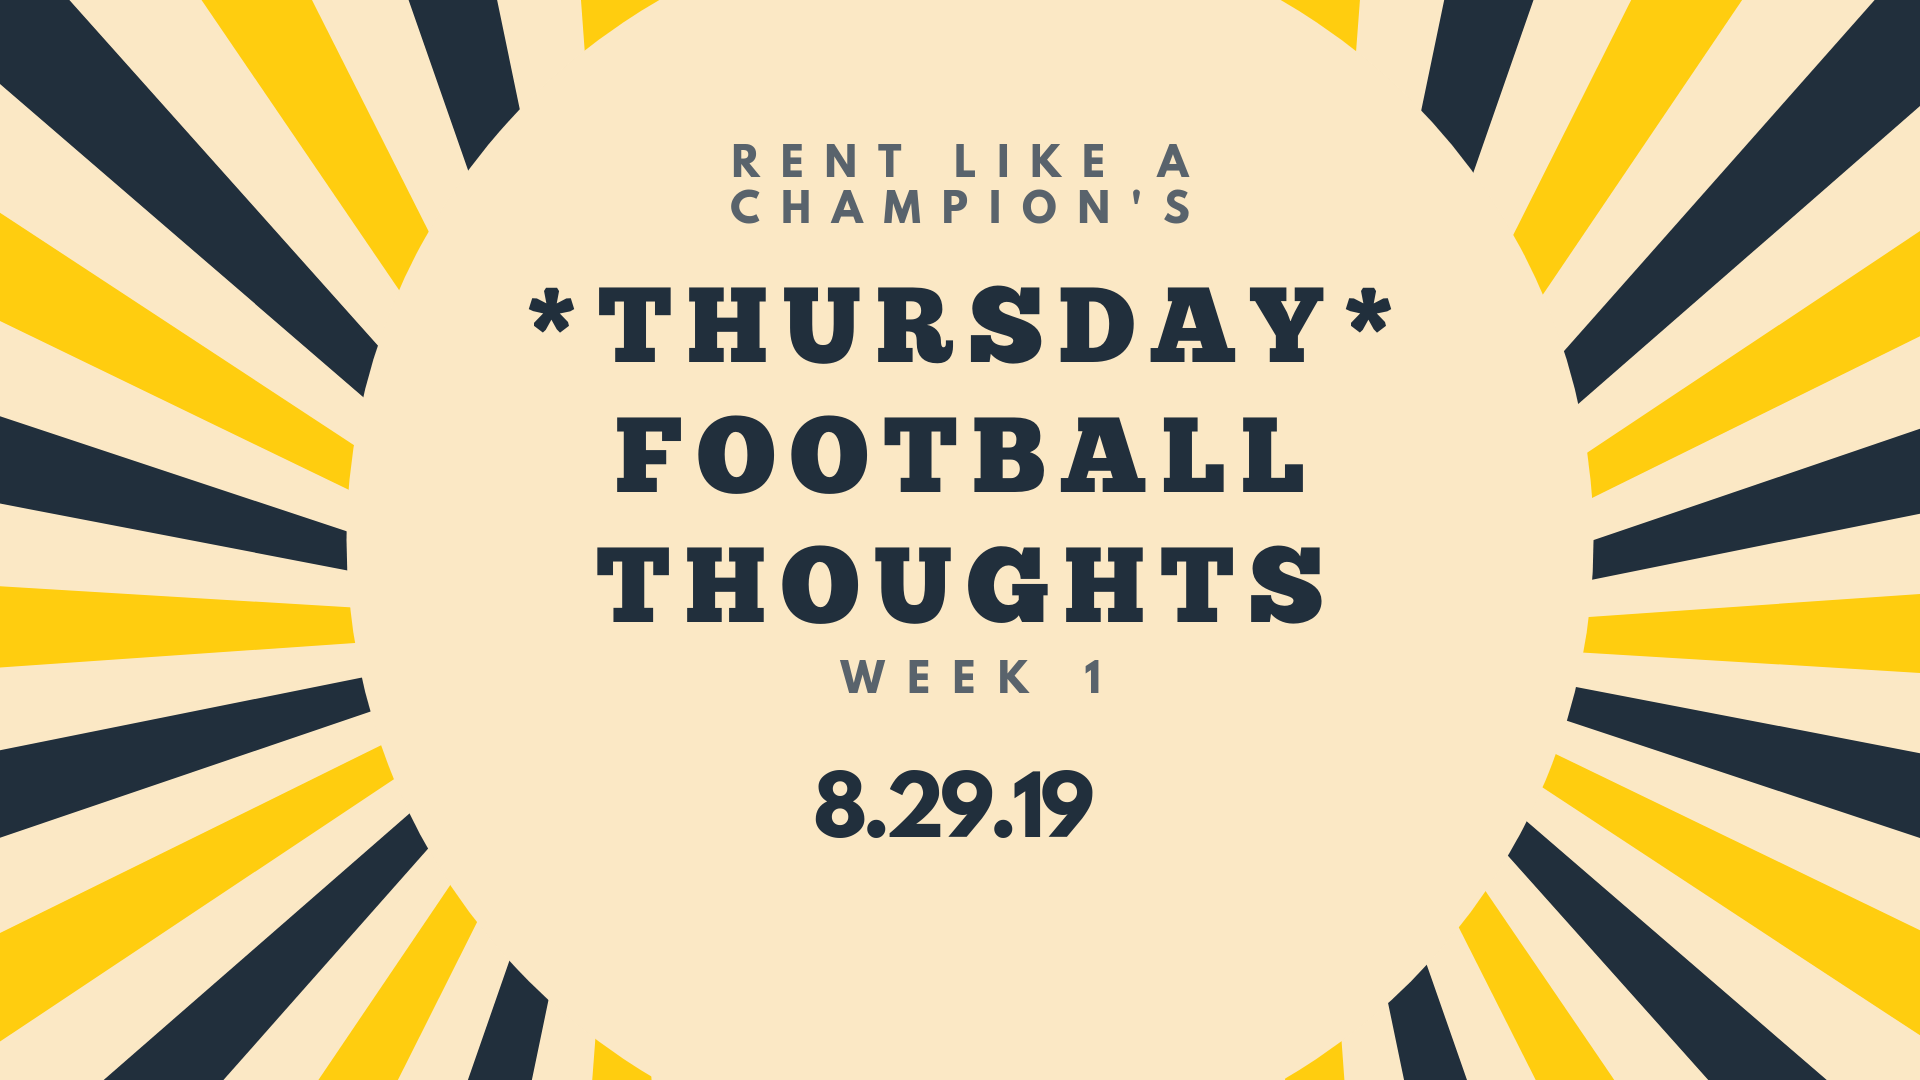 THURSDAY Football Thoughts 8.29